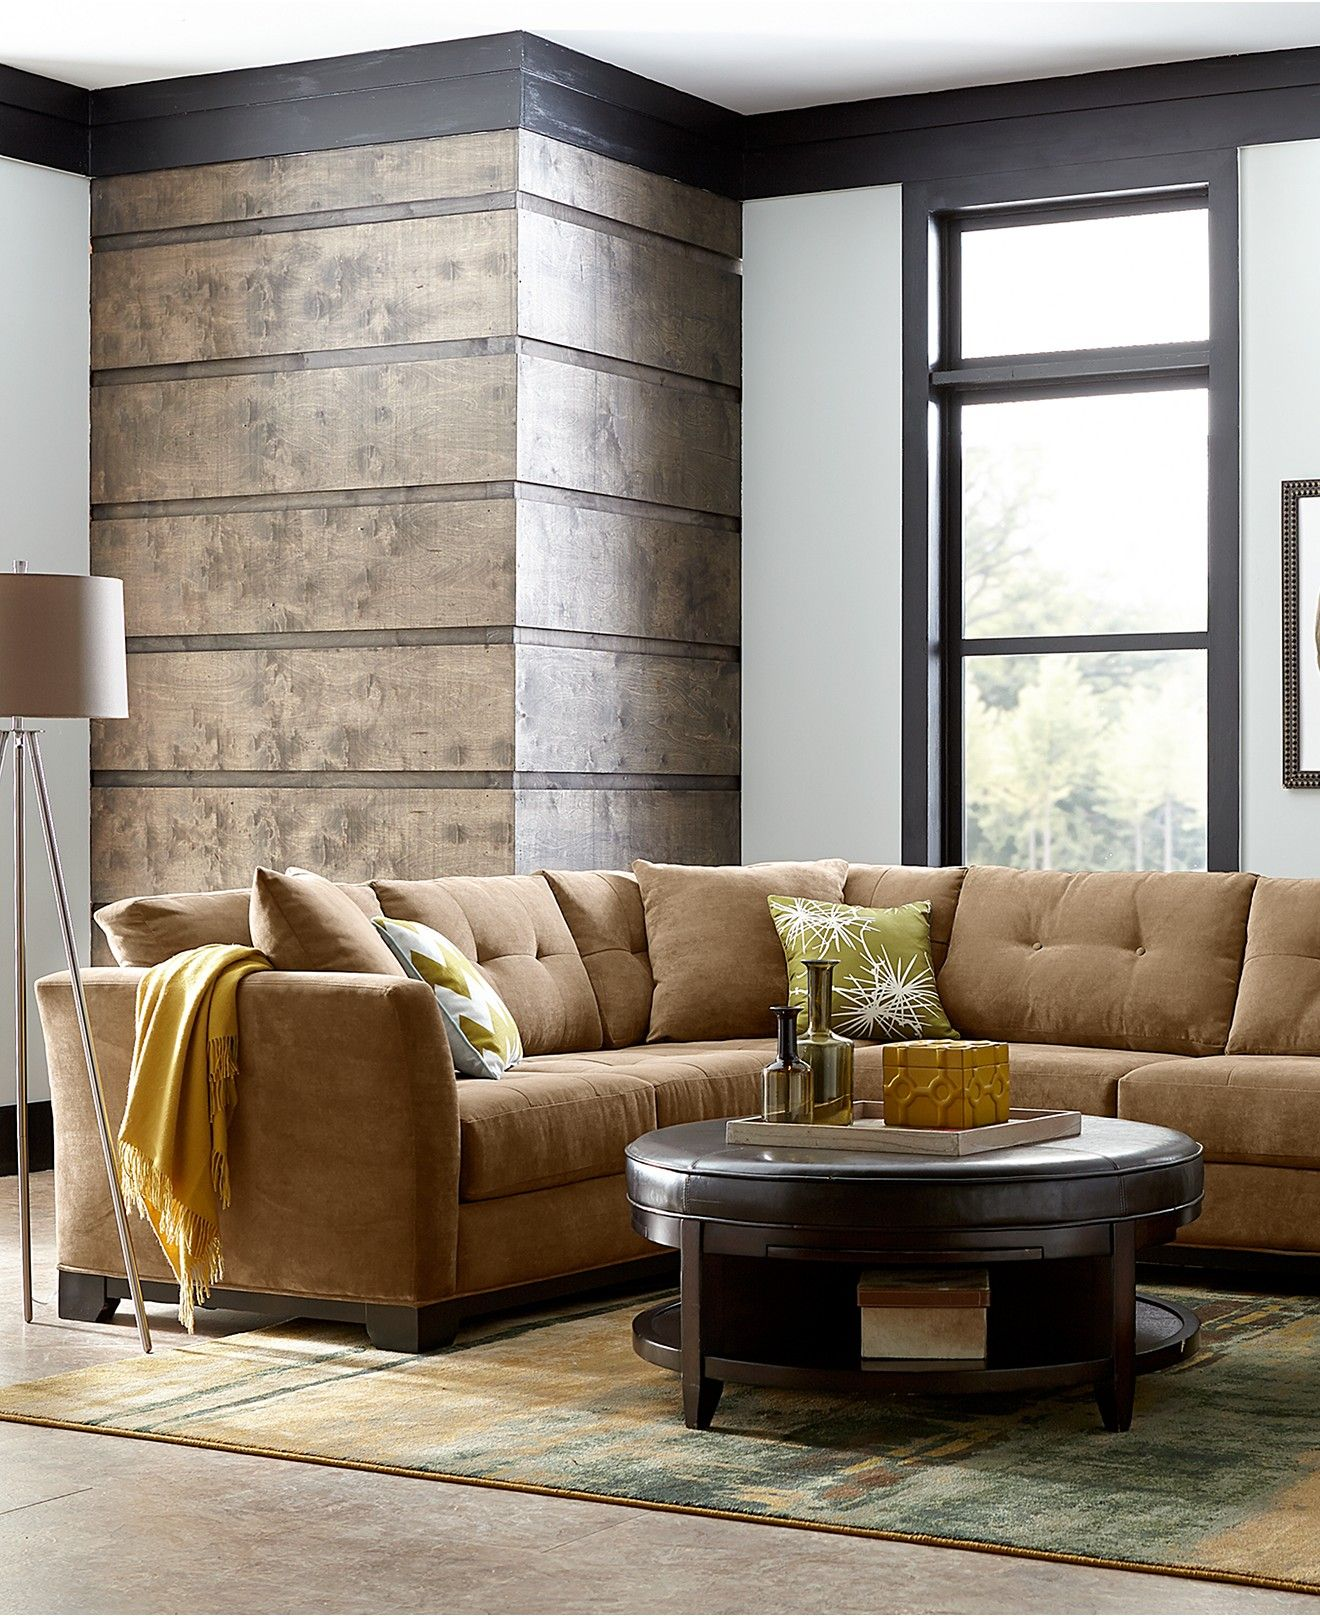 Elliot Fabric Microfiber 2 Piece Sectional Sofa Living Room. El Dorado Furniture Living Room. 25 White Leather Sofas Onleather. Beautiful Products From Eldorado Stone Custom Stone Mantels And